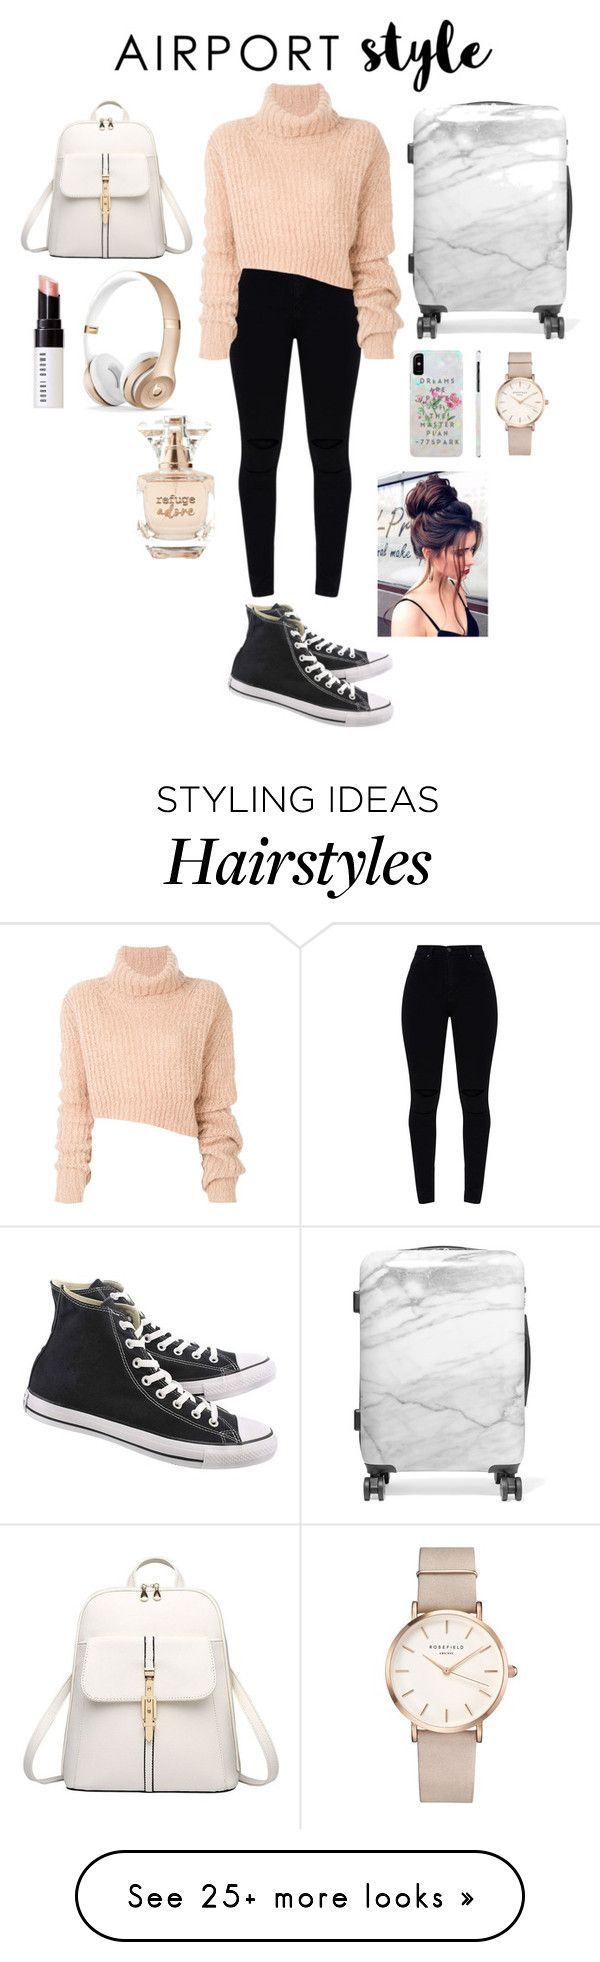 """""""Airport Style contest"""" by gabby-galindo-97 on Polyvore featuring Ann Demeulemeester, Converse, CalPak, ROSEFIELD, Bobbi Brown Cosmetics, Refuge and airportstyle"""